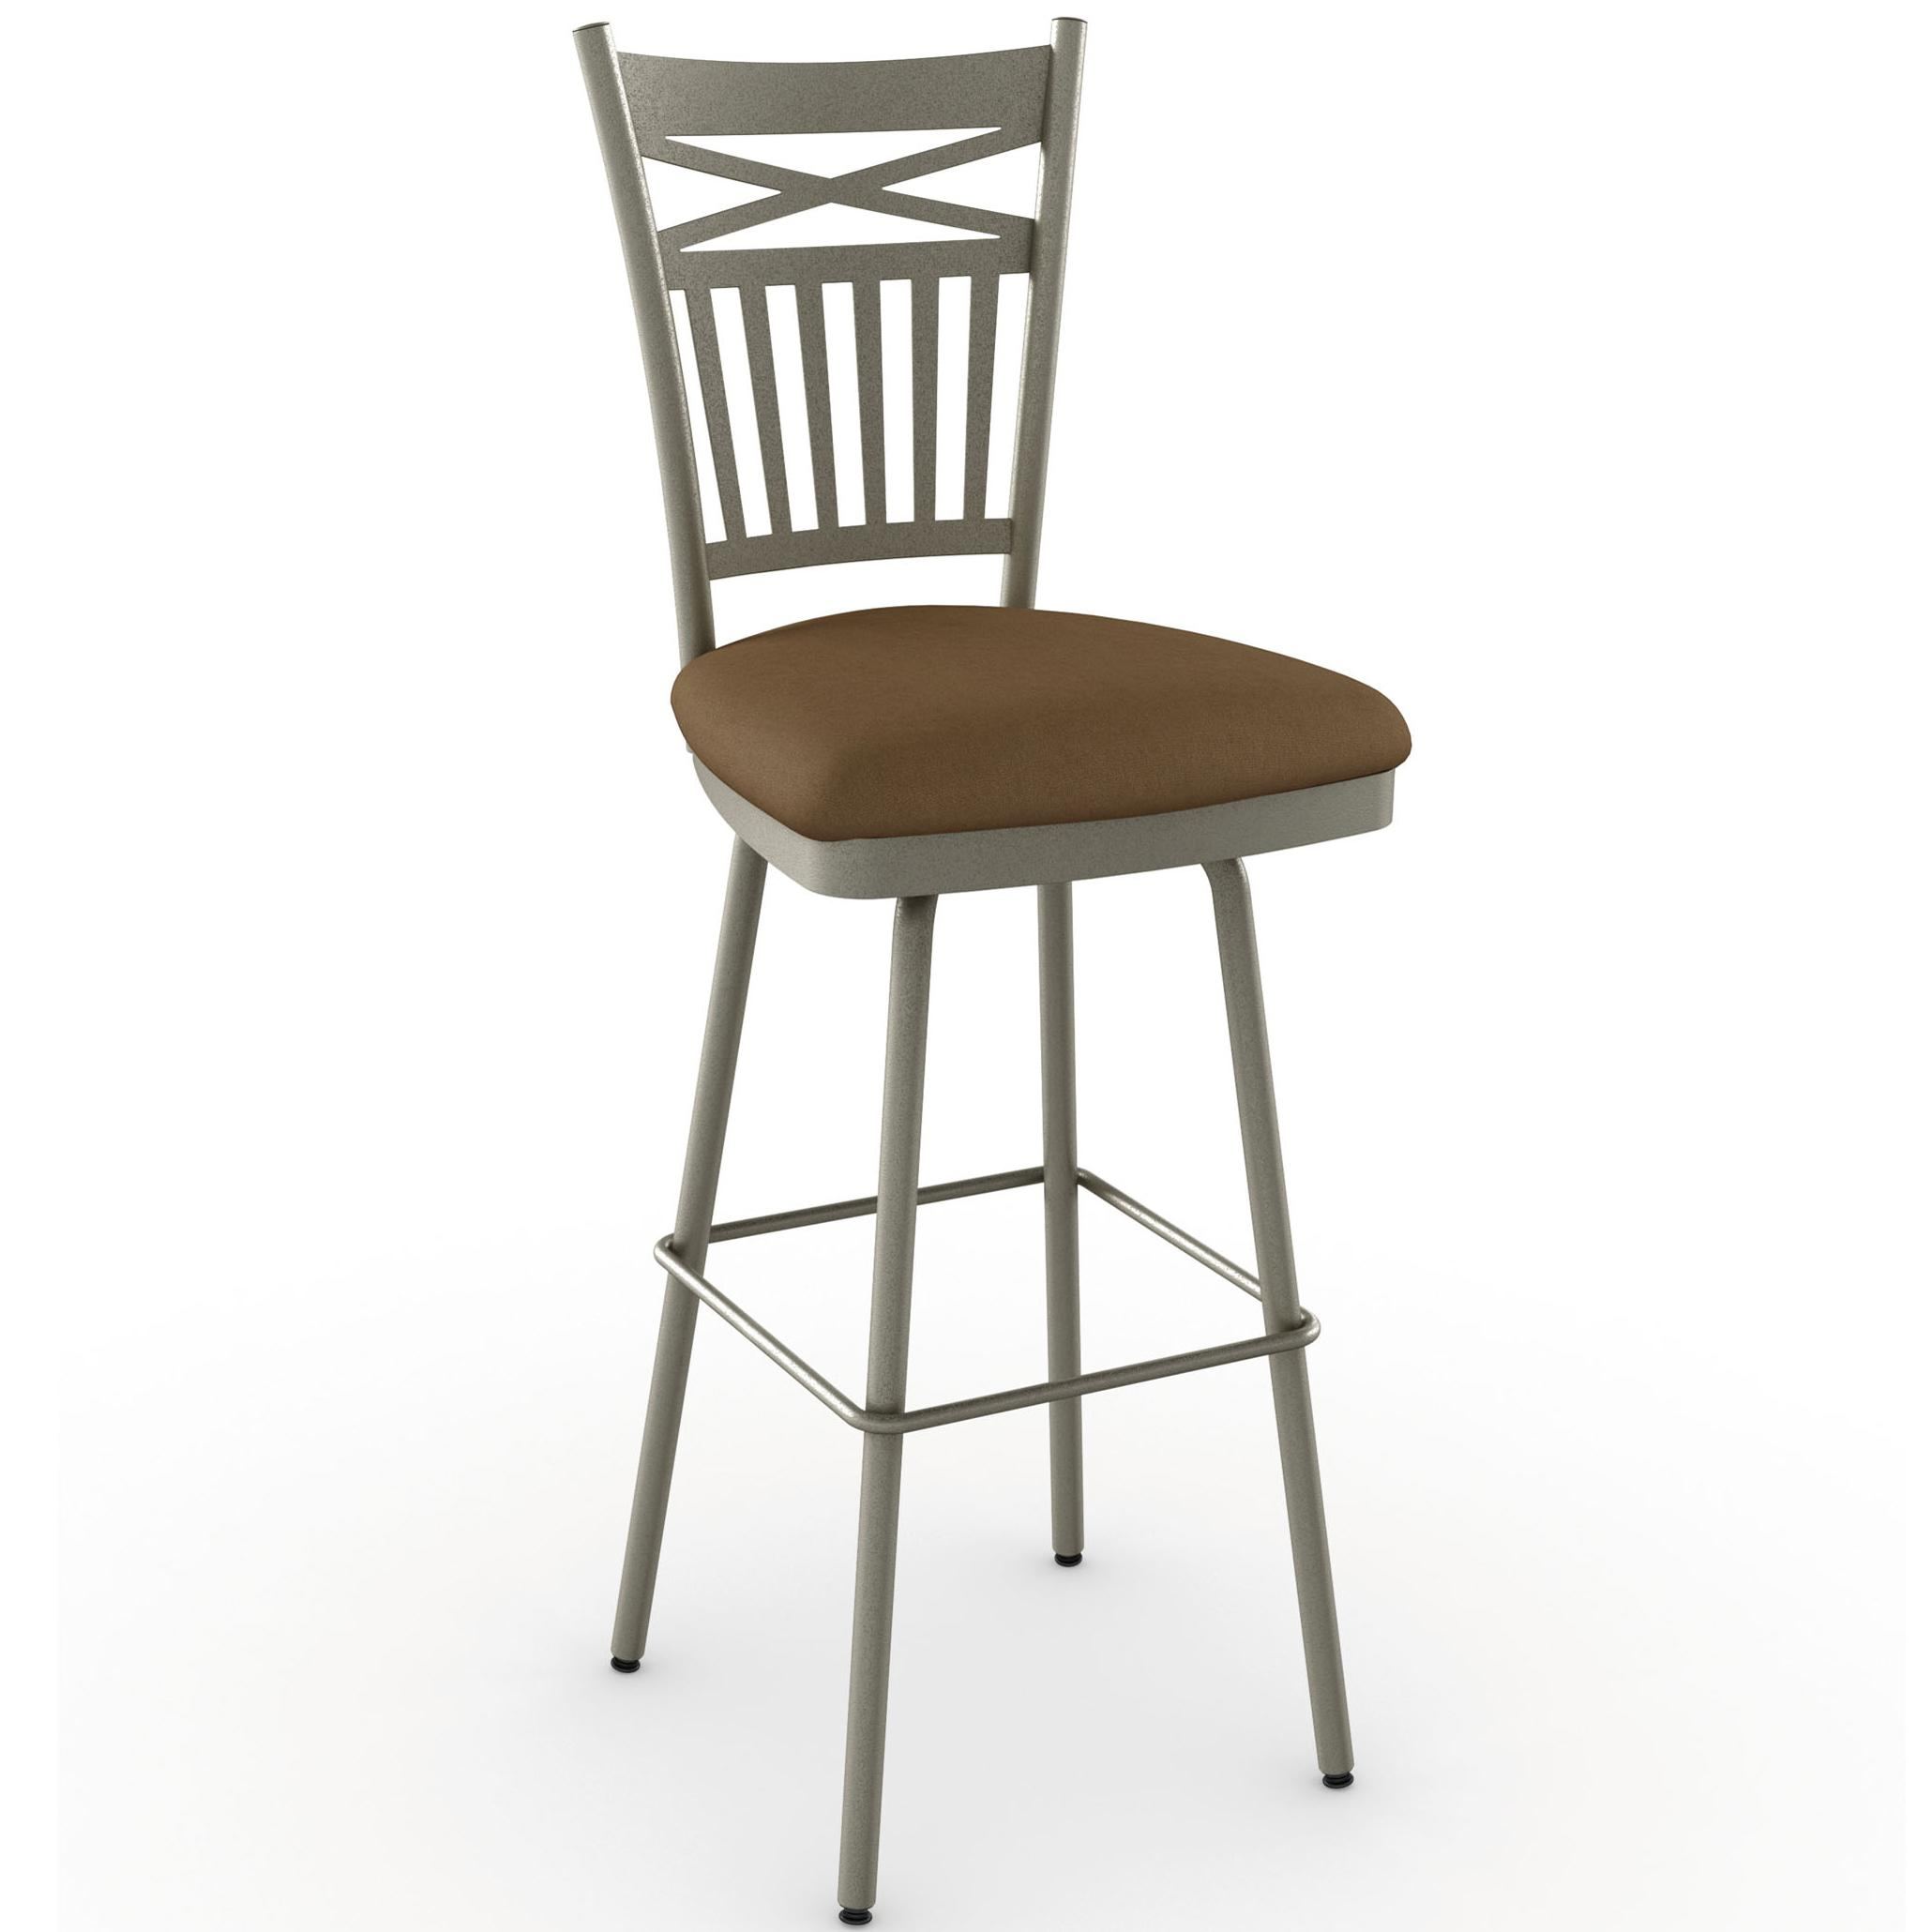 "Countryside 30"" Garden Swivel Bar Stool by Amisco at Dinette Depot"